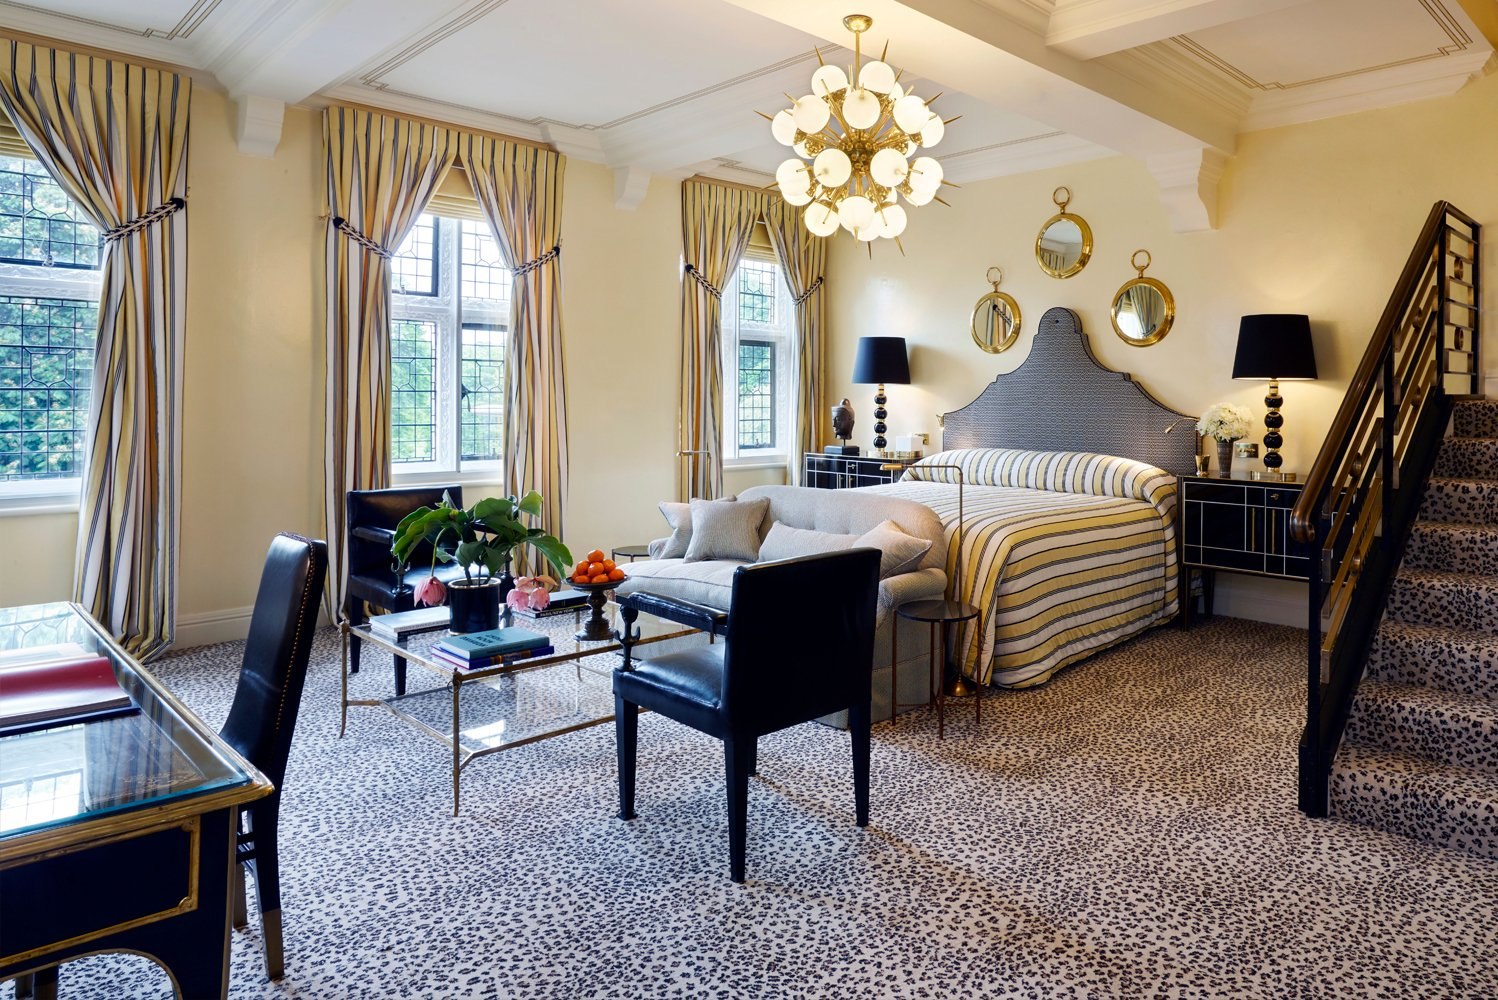 The Milestone Hotel & Residences, located across from Kensington Gardens, has completed the final phase of its renovations.